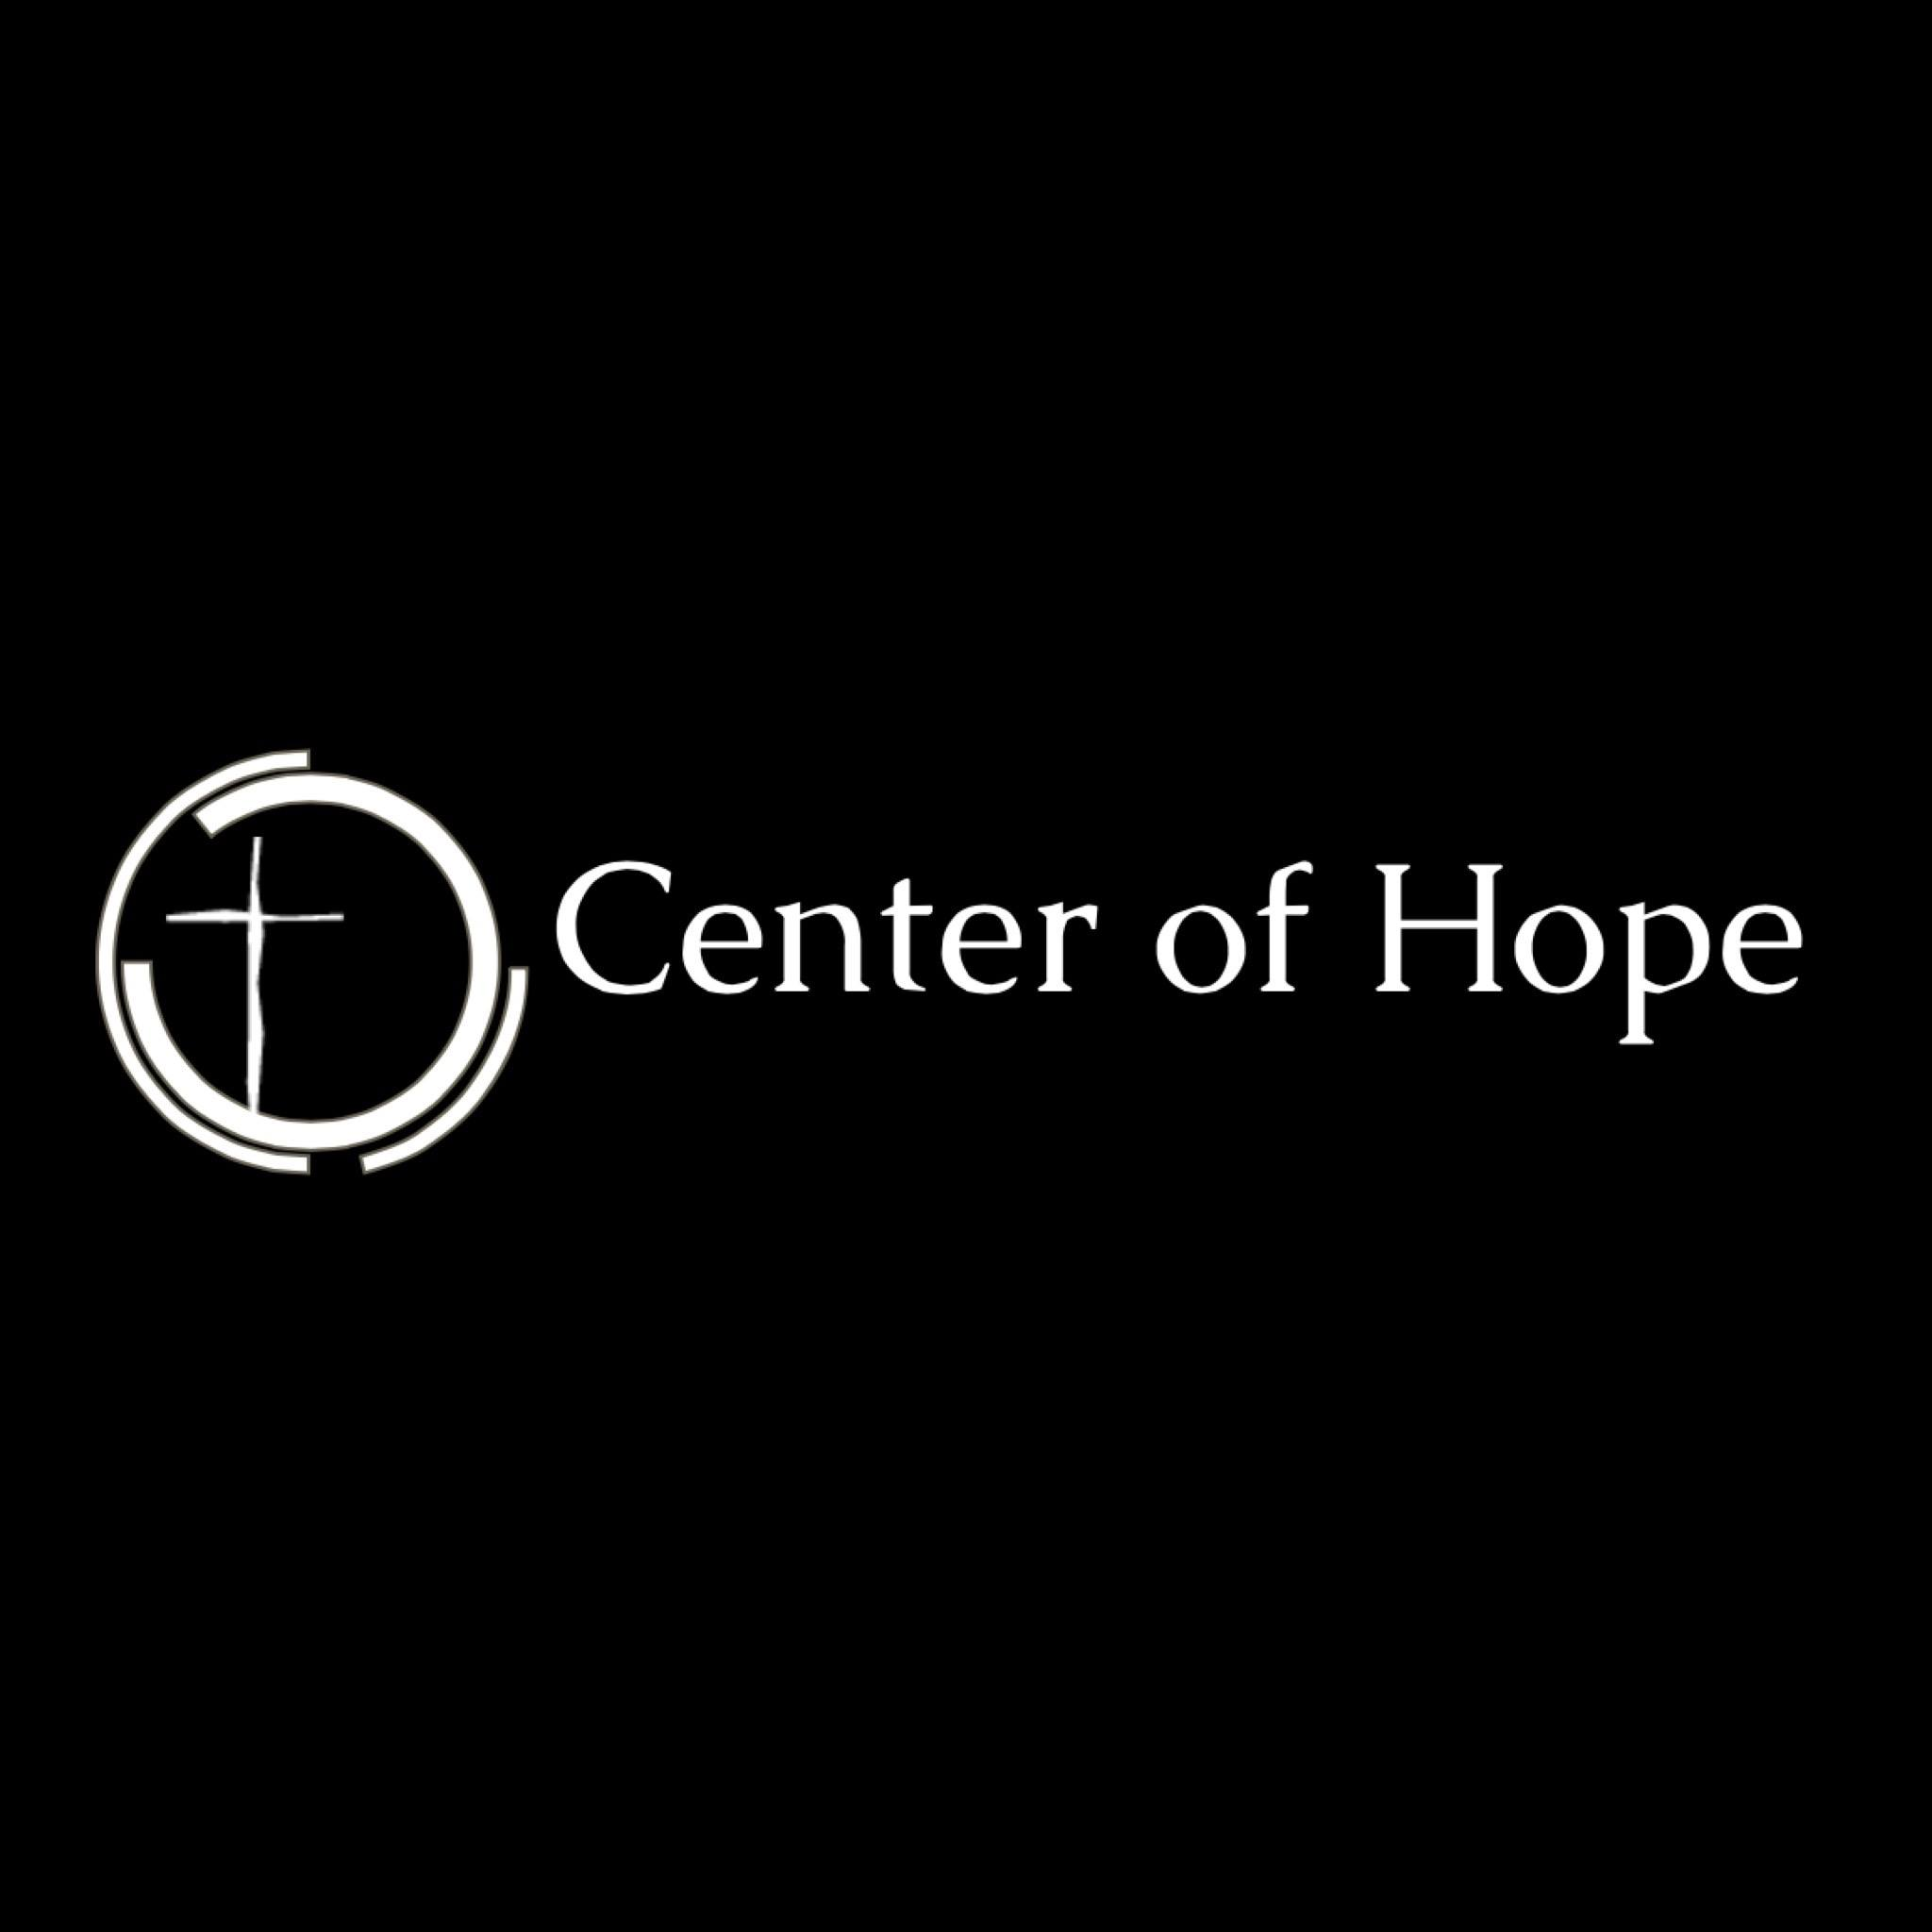 Center of Hope Evansville